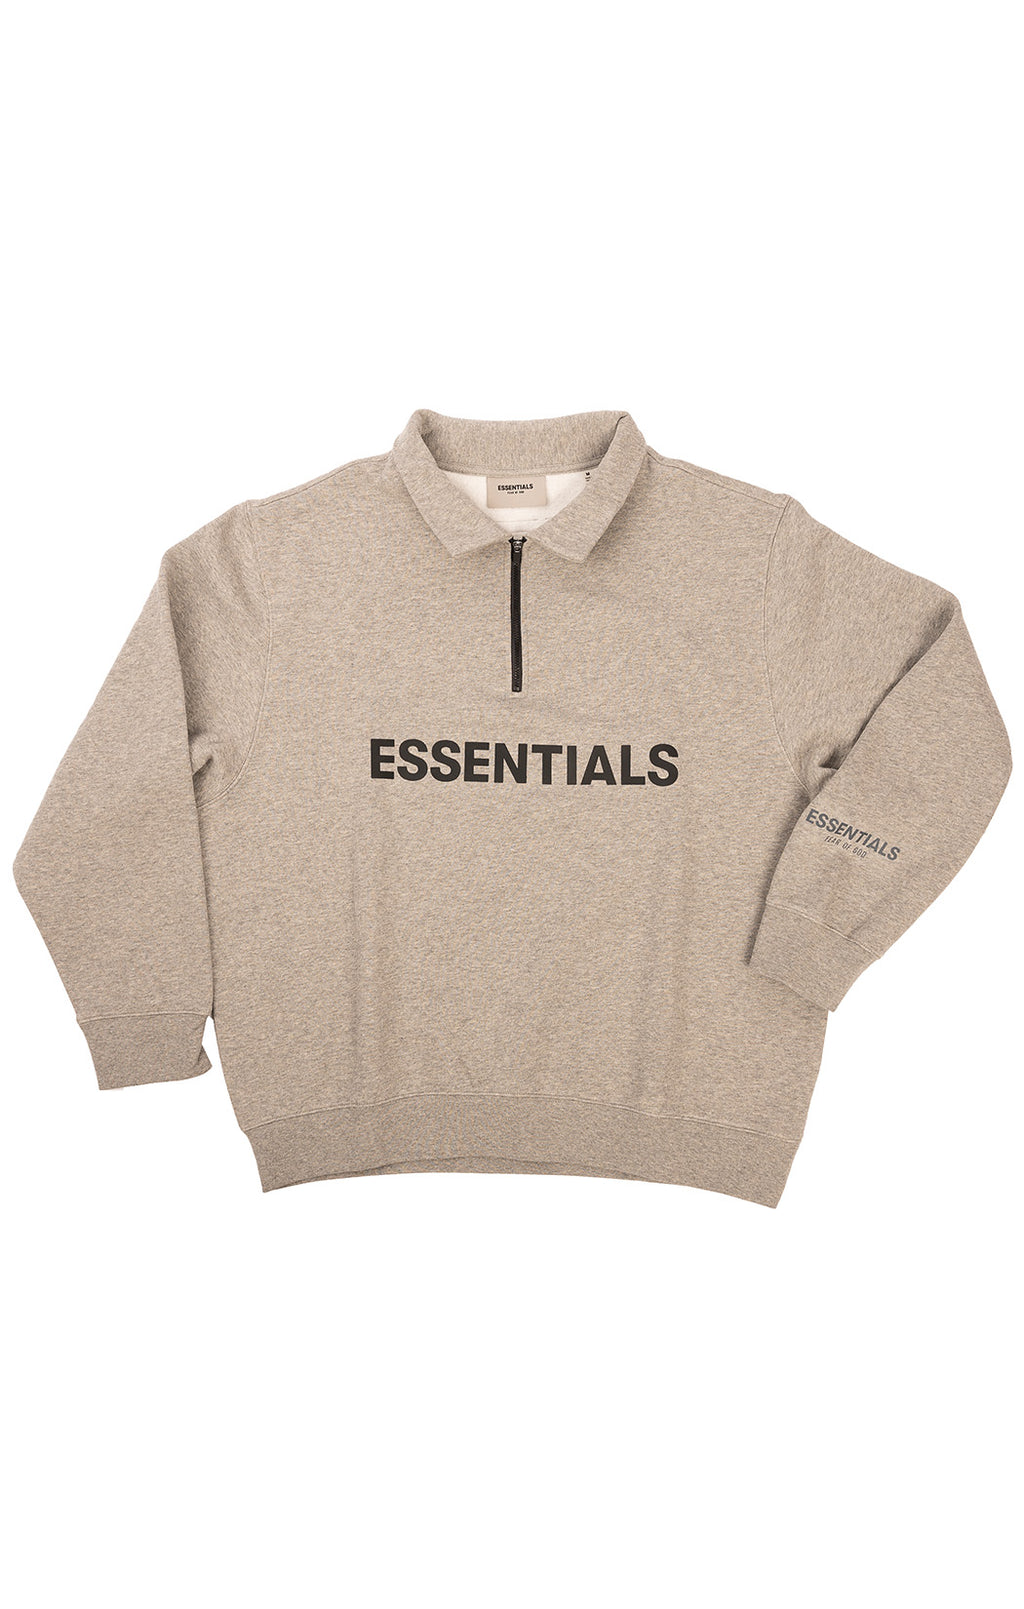 FEAR OF GOD ESSENTIALS with tags  Sweatshirt  Size: Medium